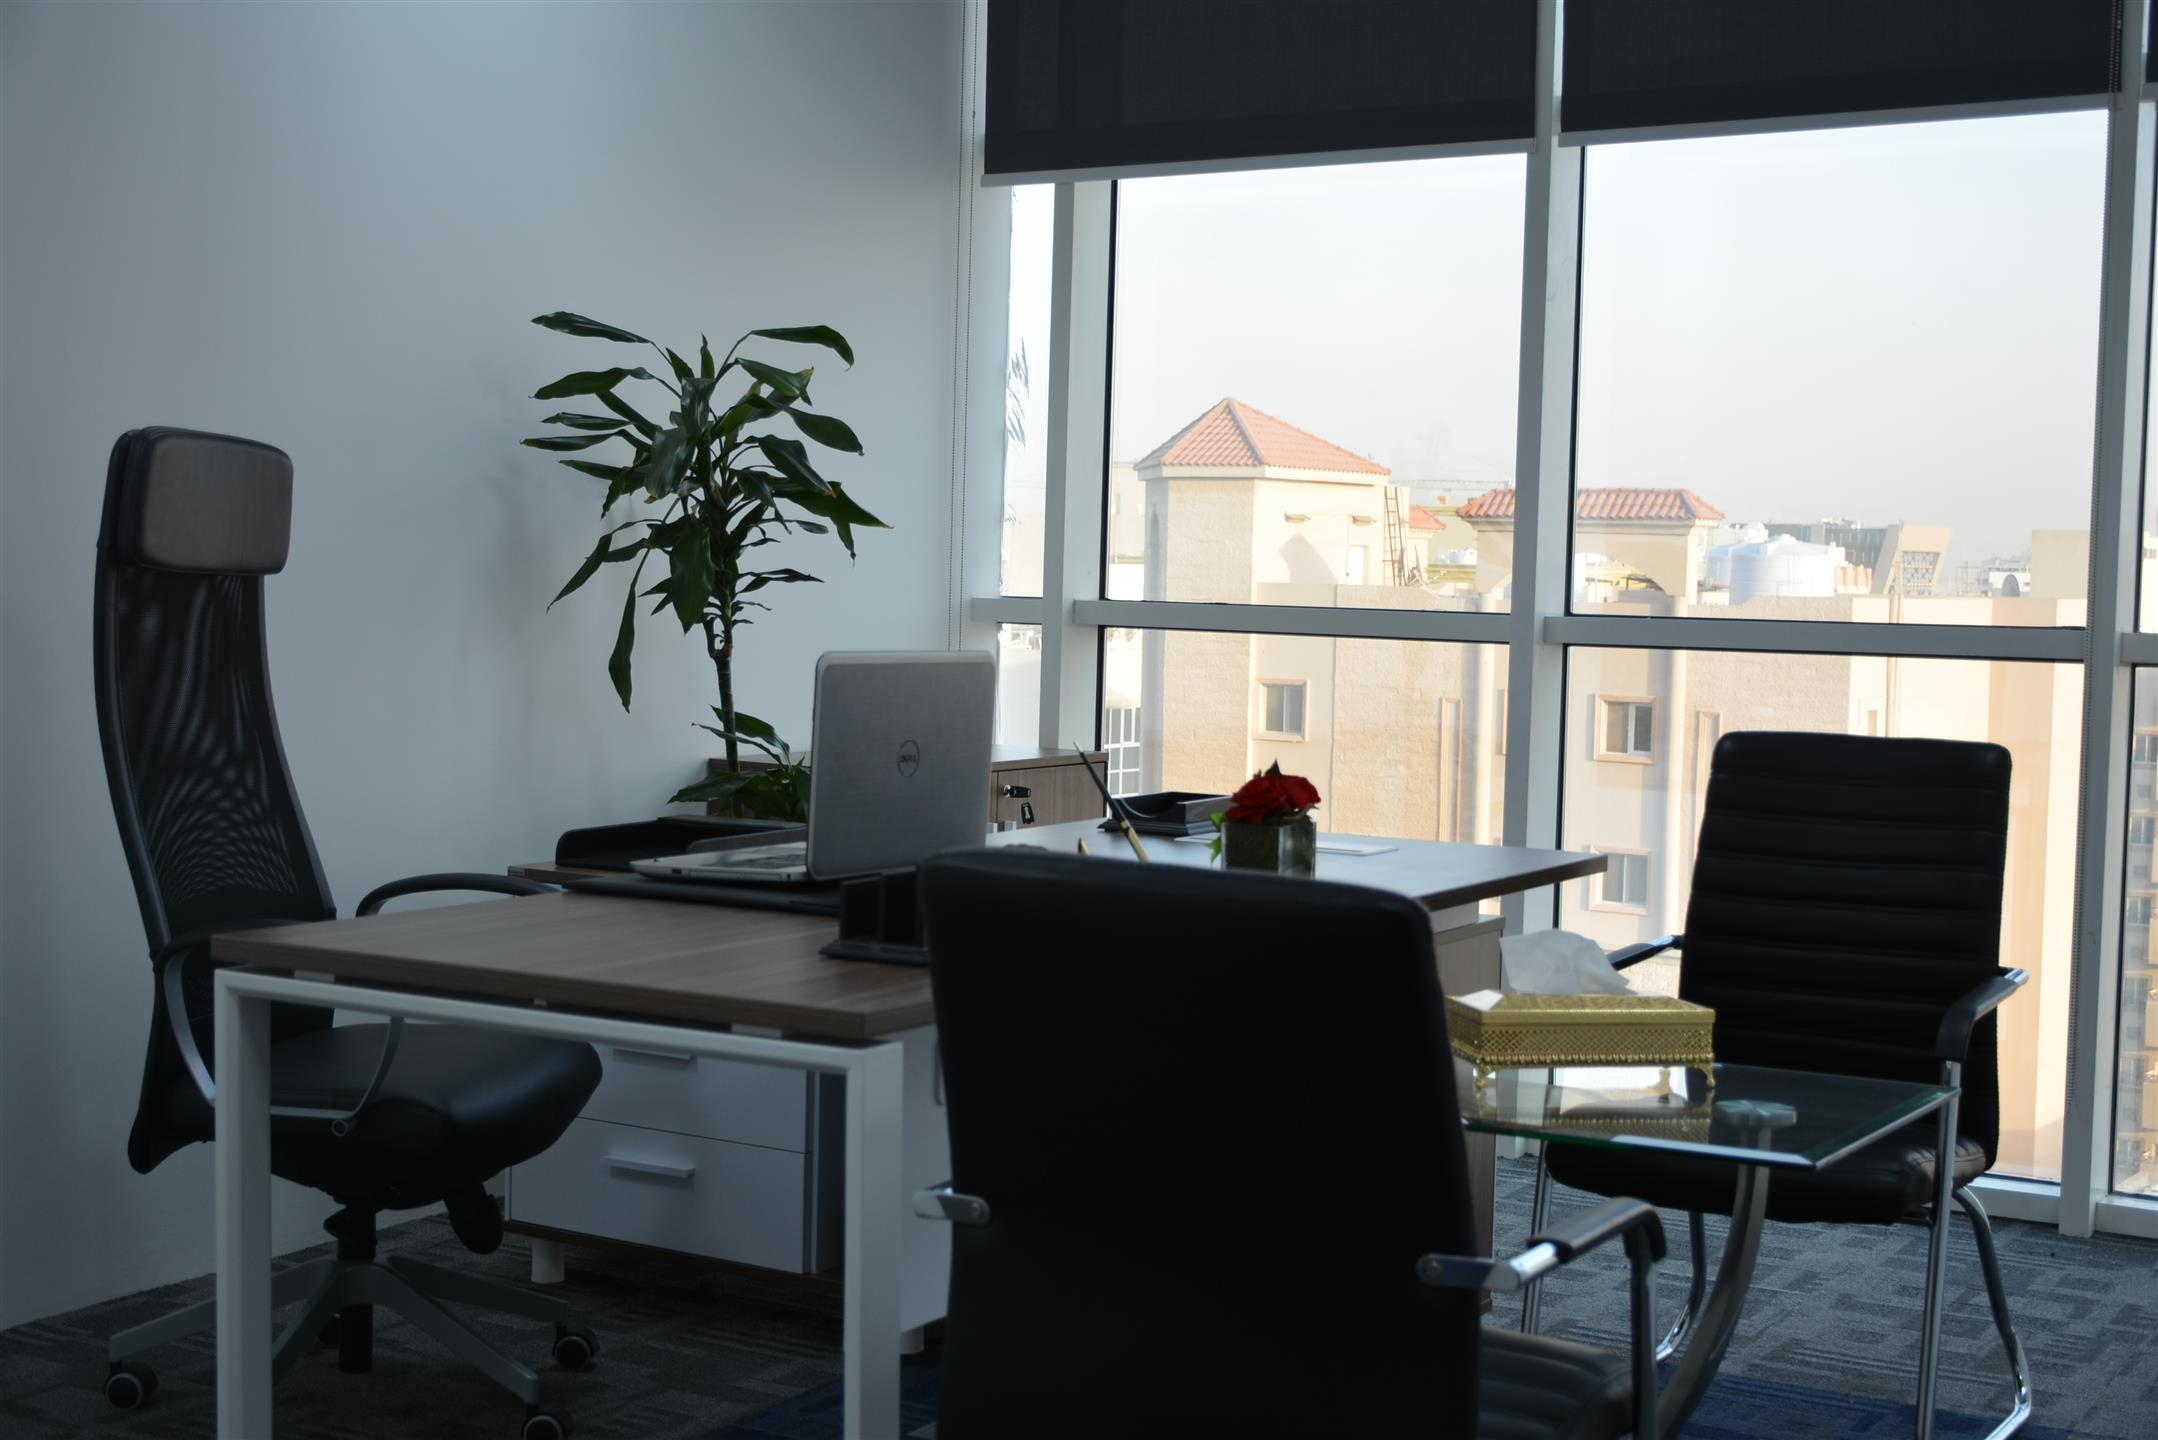 Charming Office Room For Rent In Qatar Images - Simple Design Home ...